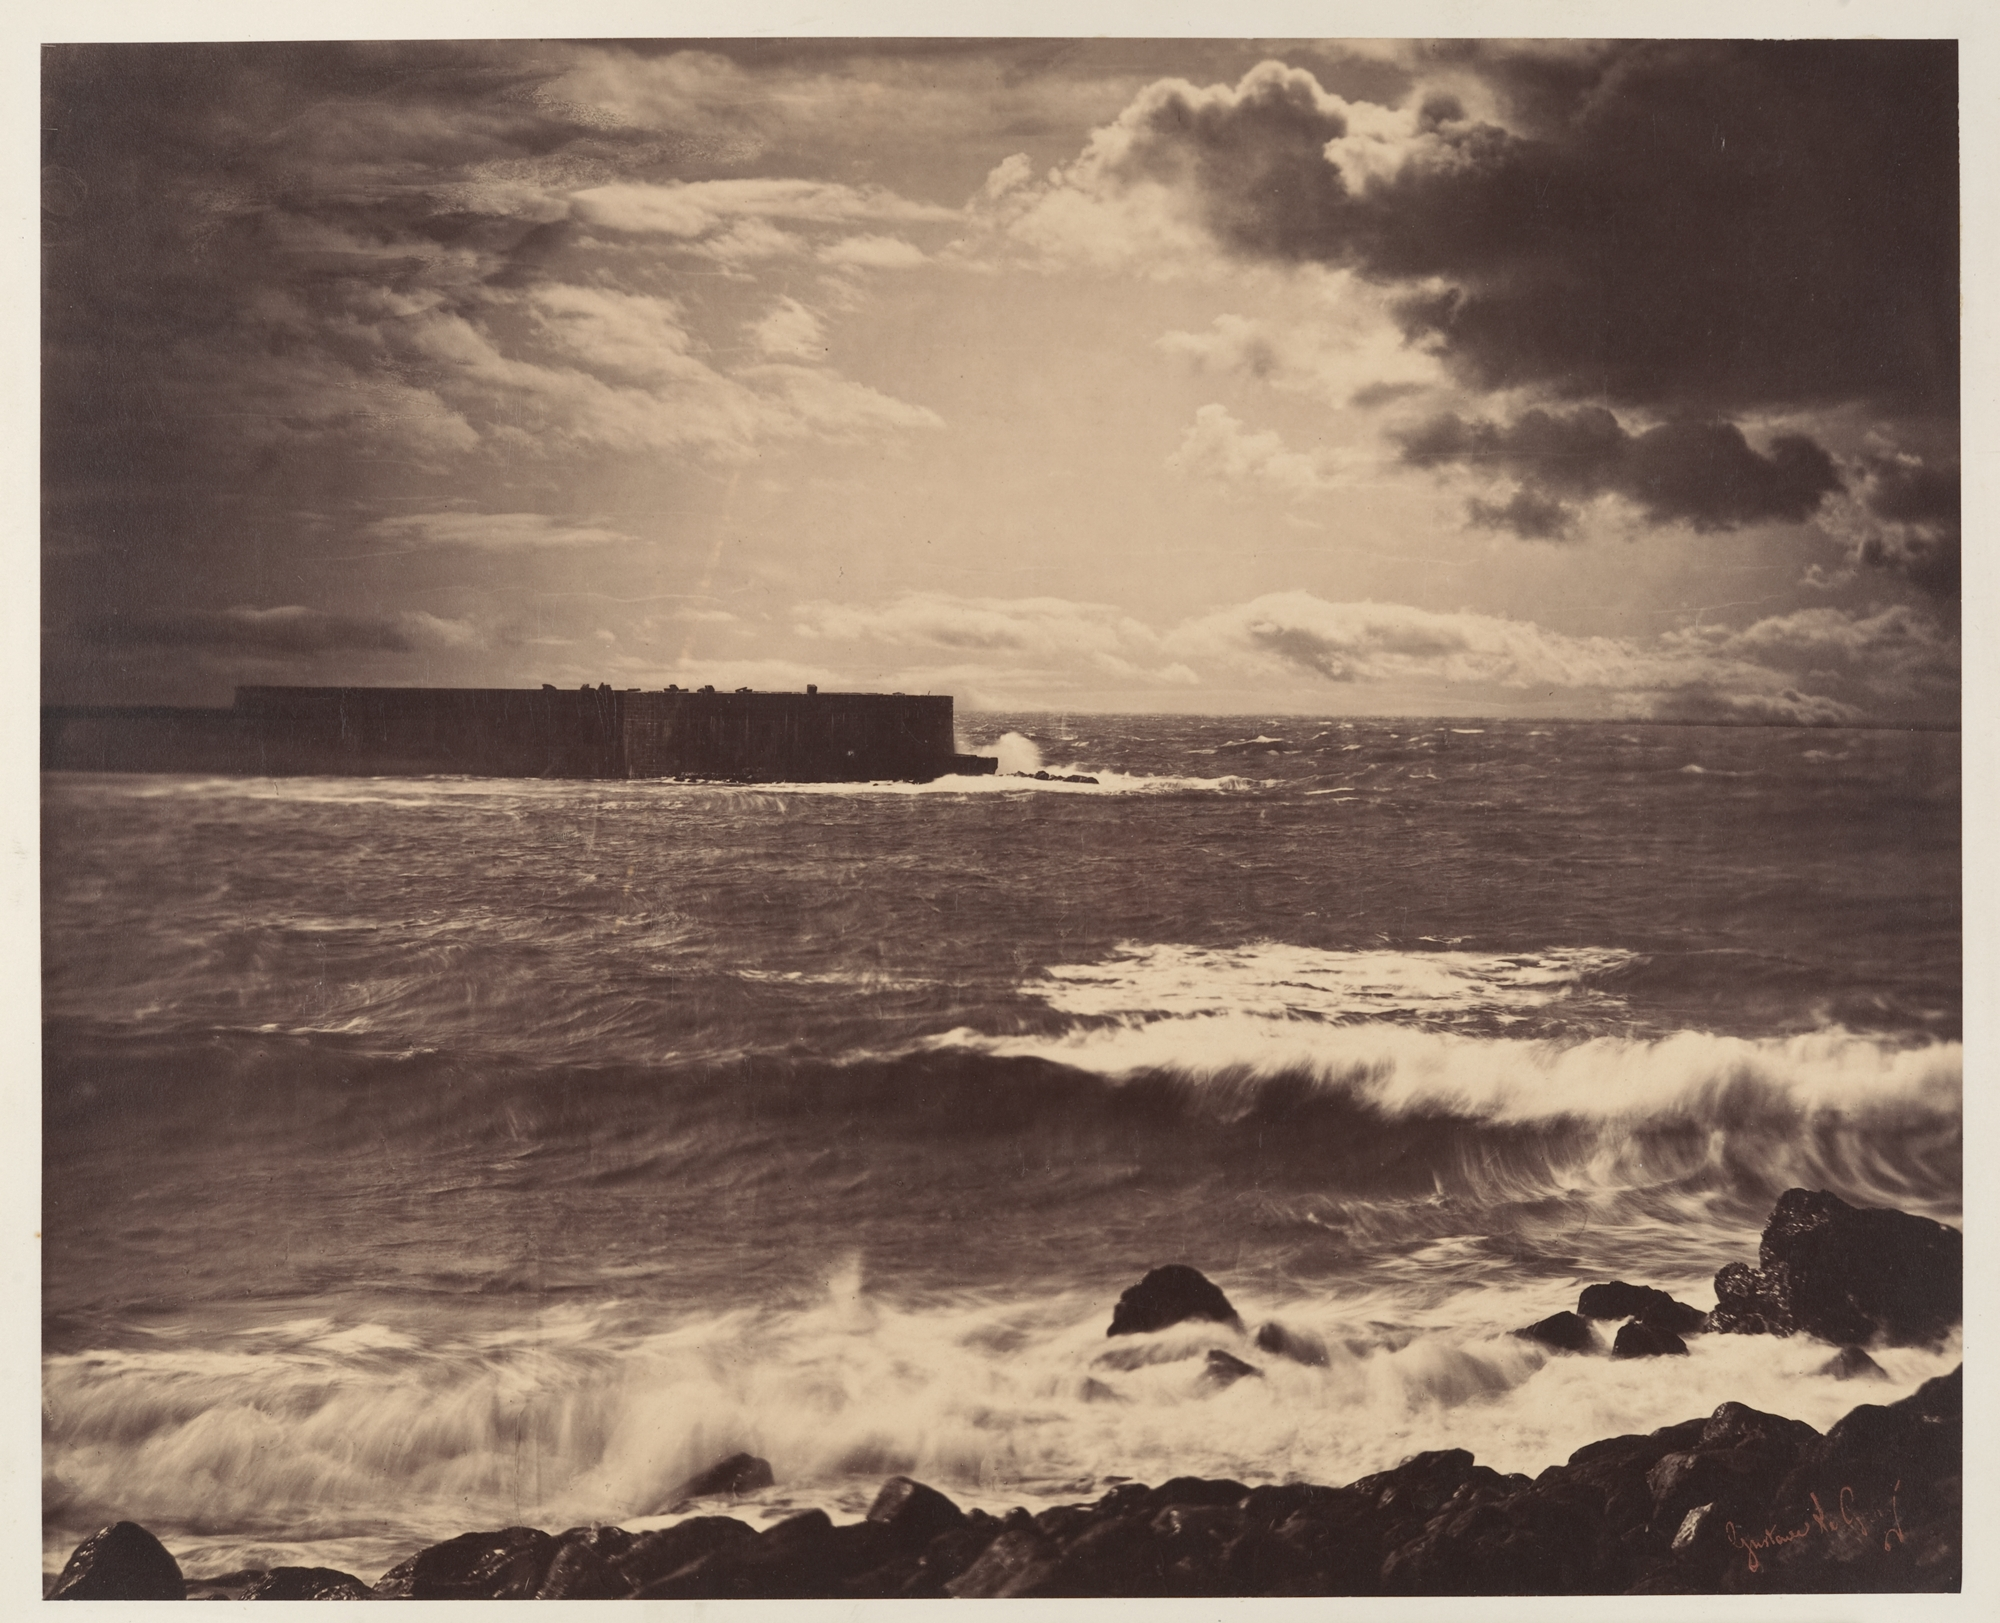 Gustave Le Gray - The Great Wave (1857)